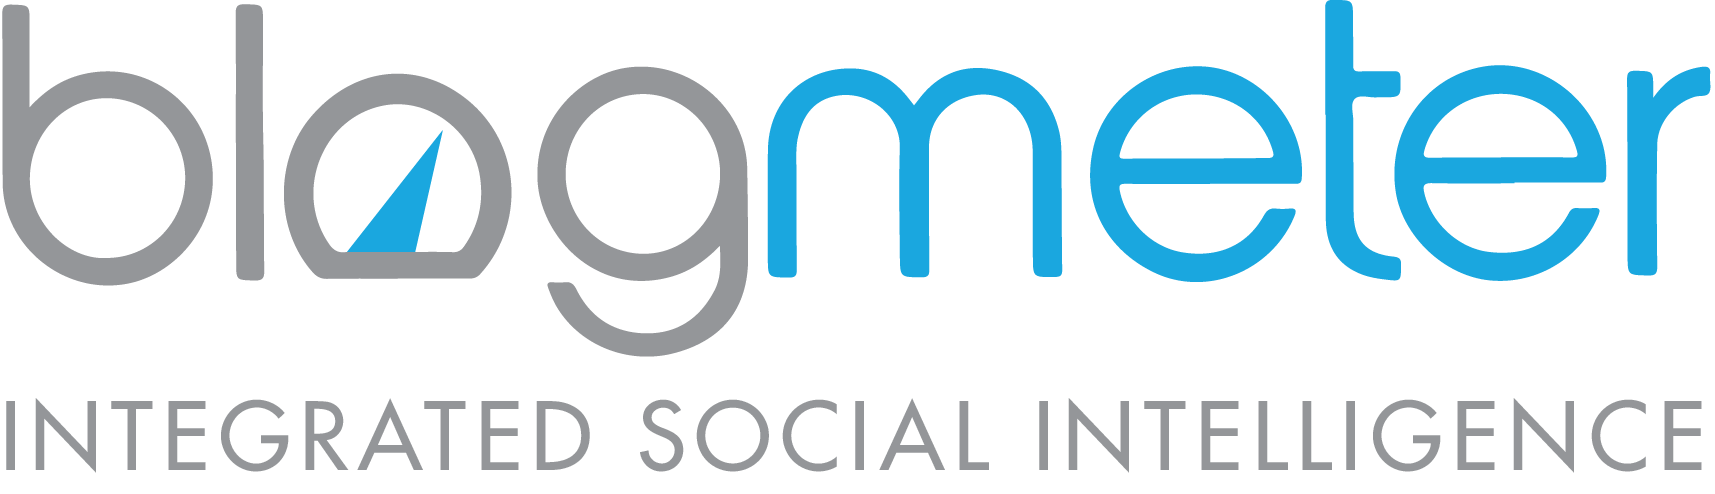 Blogmeter Integrated Social Intelligence